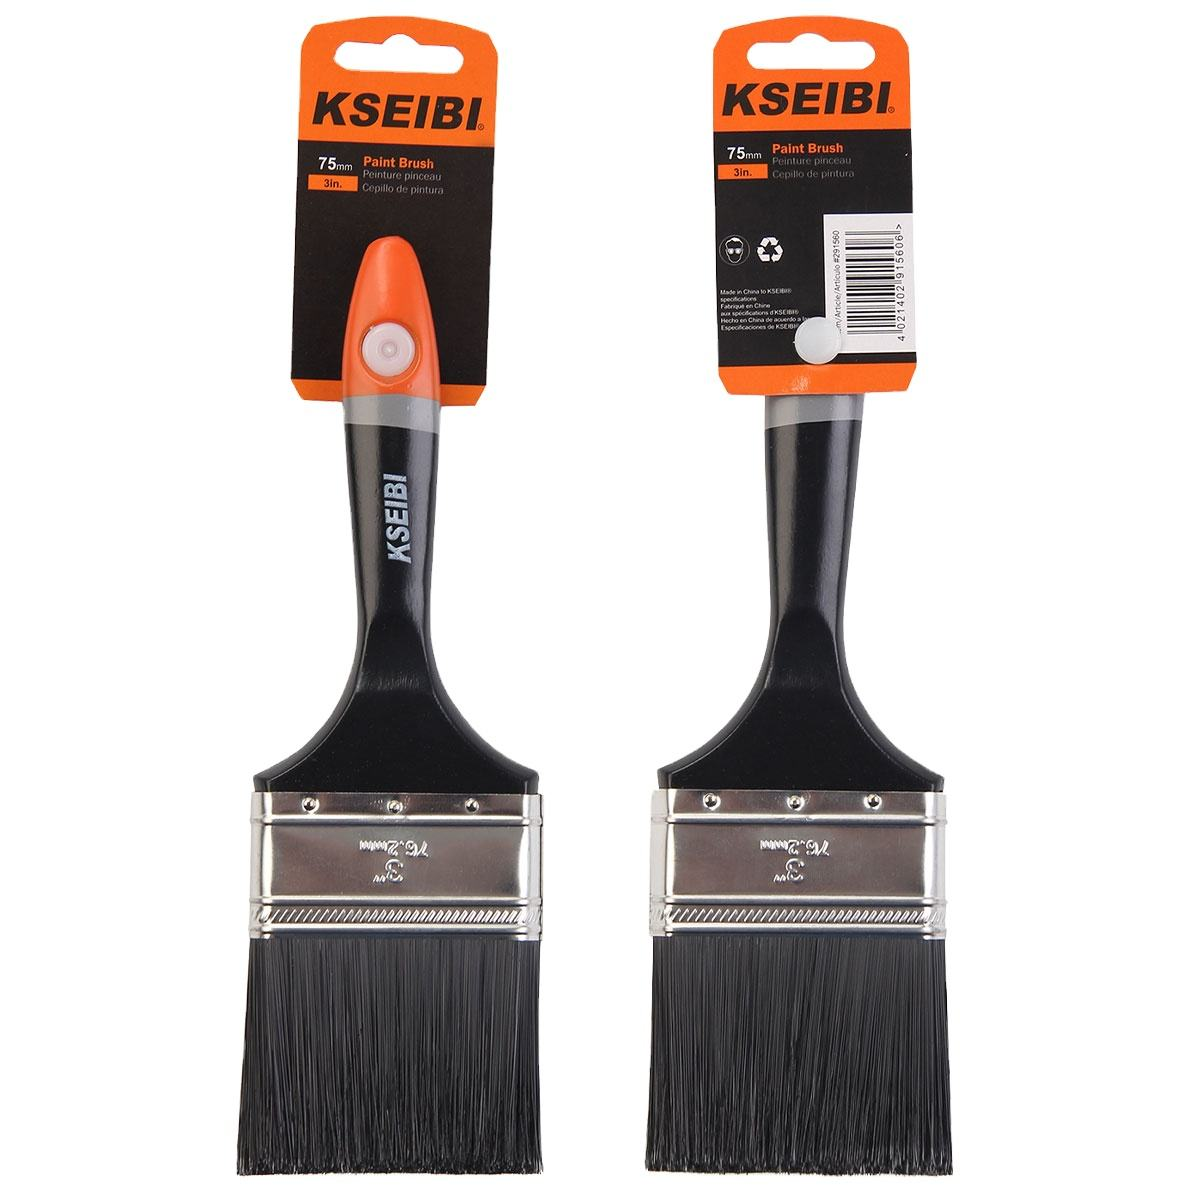 KSEIBI Most Popular 1''25MM 4''100MM Paint Brushes Trade Professional